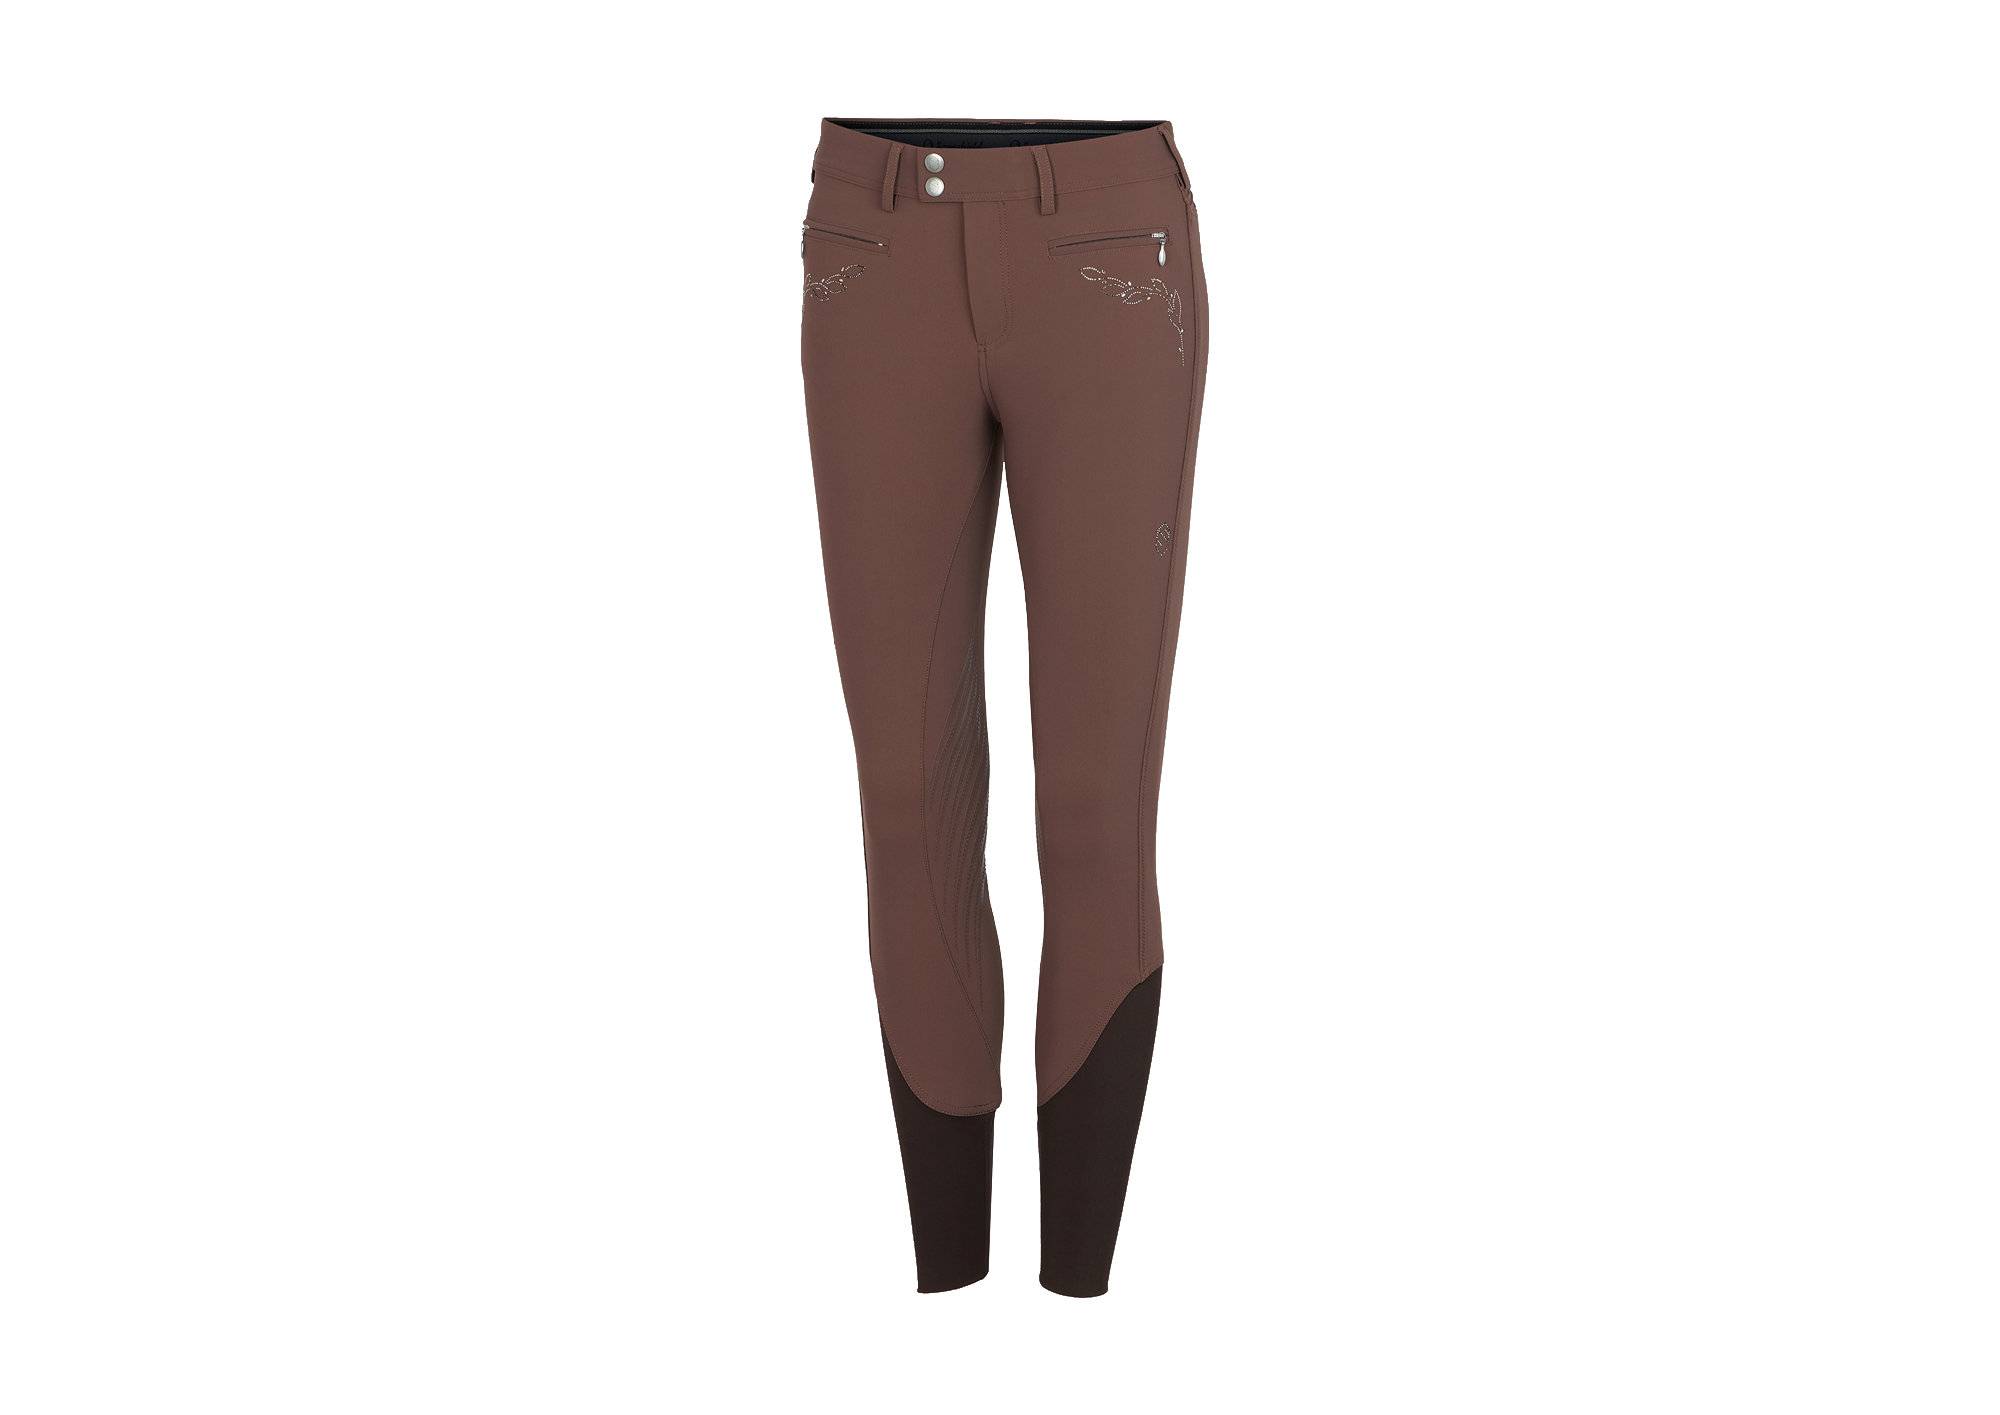 RIDING BREECHES SAMSHIELD ADELE 3 LEAF